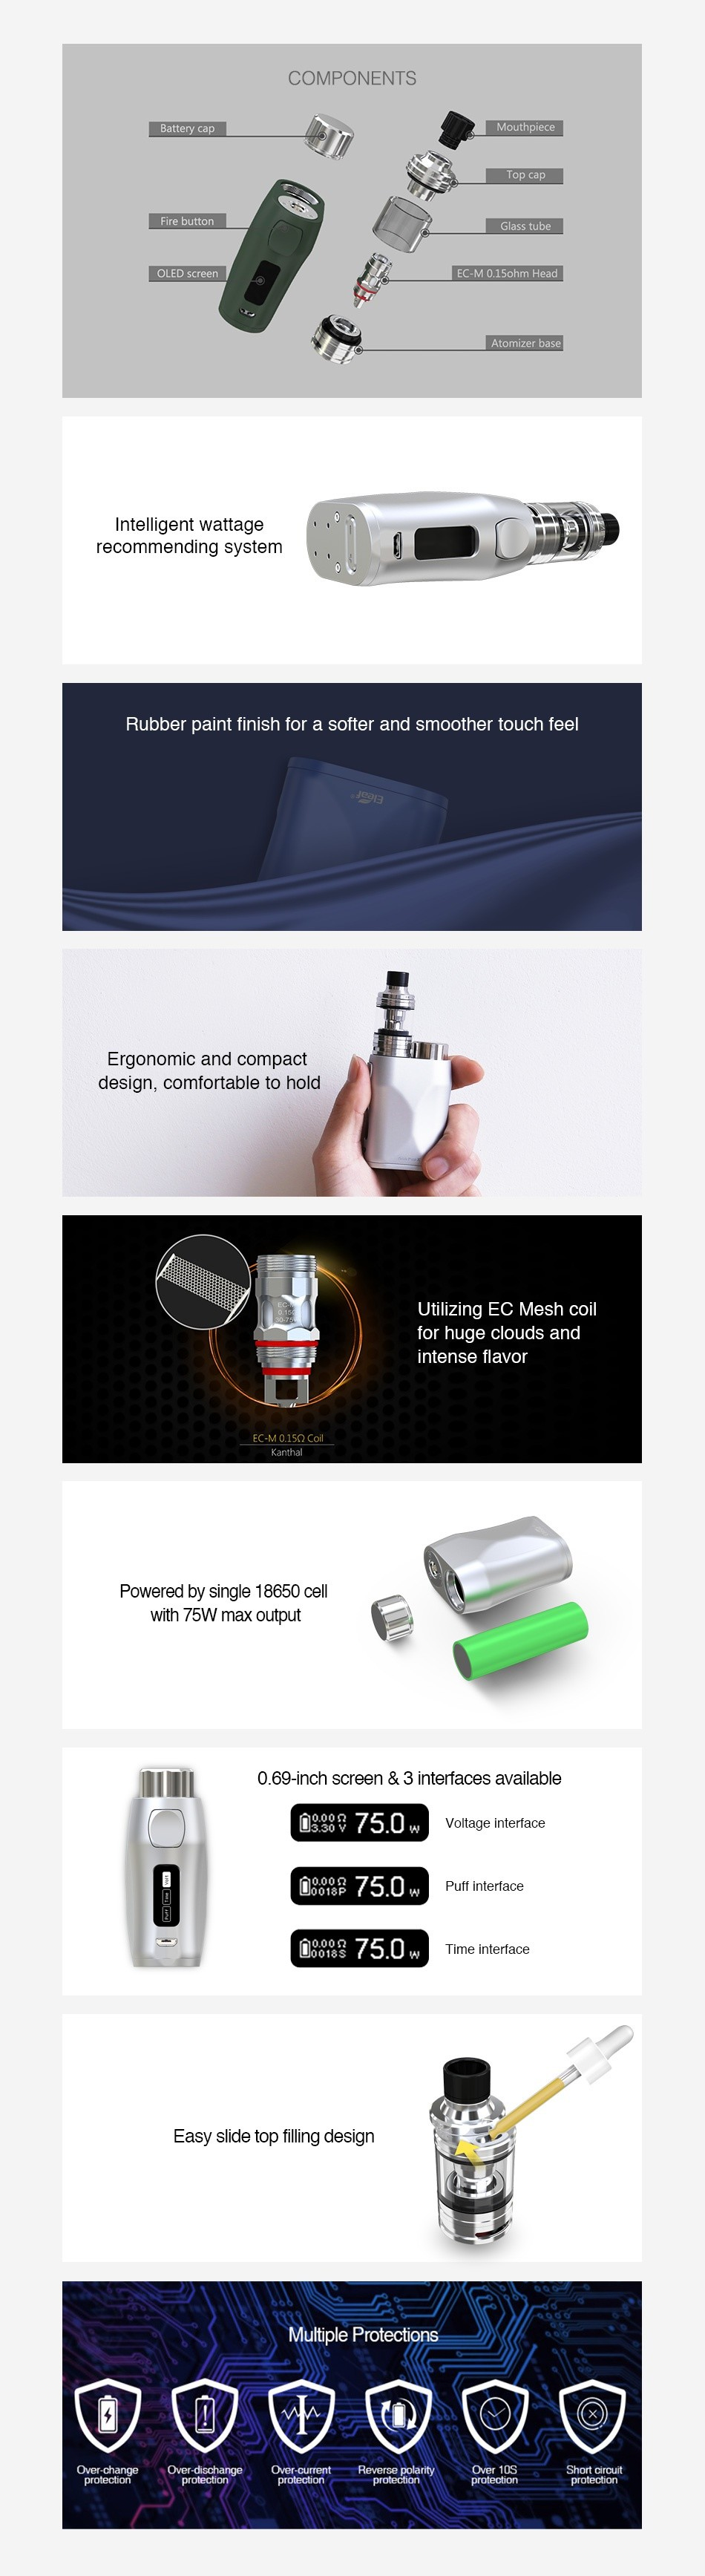 Eleaf iStick Pico X 75W TC Kit with Melo 4 Atomizer COMPONENTS recommending system Rubber paint finish for a softer and smoother touch feel Ergonomic and compact uT design  comfortable to hold Powered by single 18650 cell with 75w max outout 0 69 inch screen 3 interfaces available 938750Wme 88750w Puff interlace 10018975 0 w Time interface Multiple Protecti